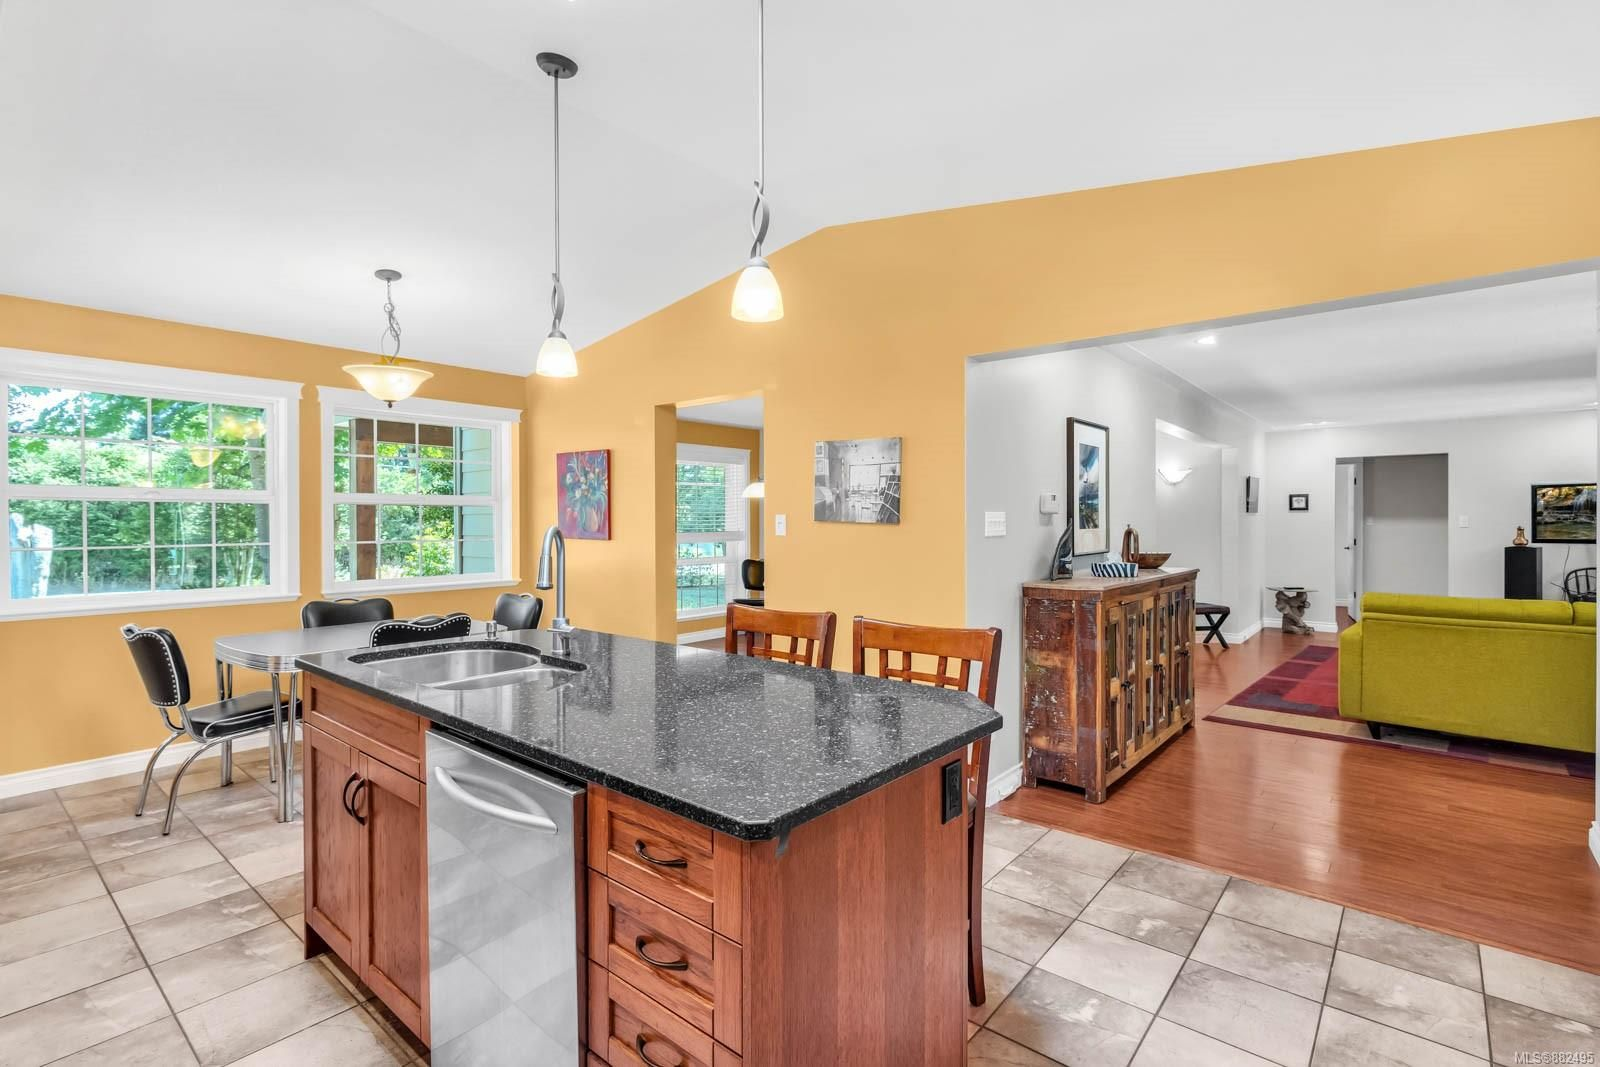 Photo 14: Photos: 375 Butchers Rd in : CV Comox (Town of) House for sale (Comox Valley)  : MLS®# 882495